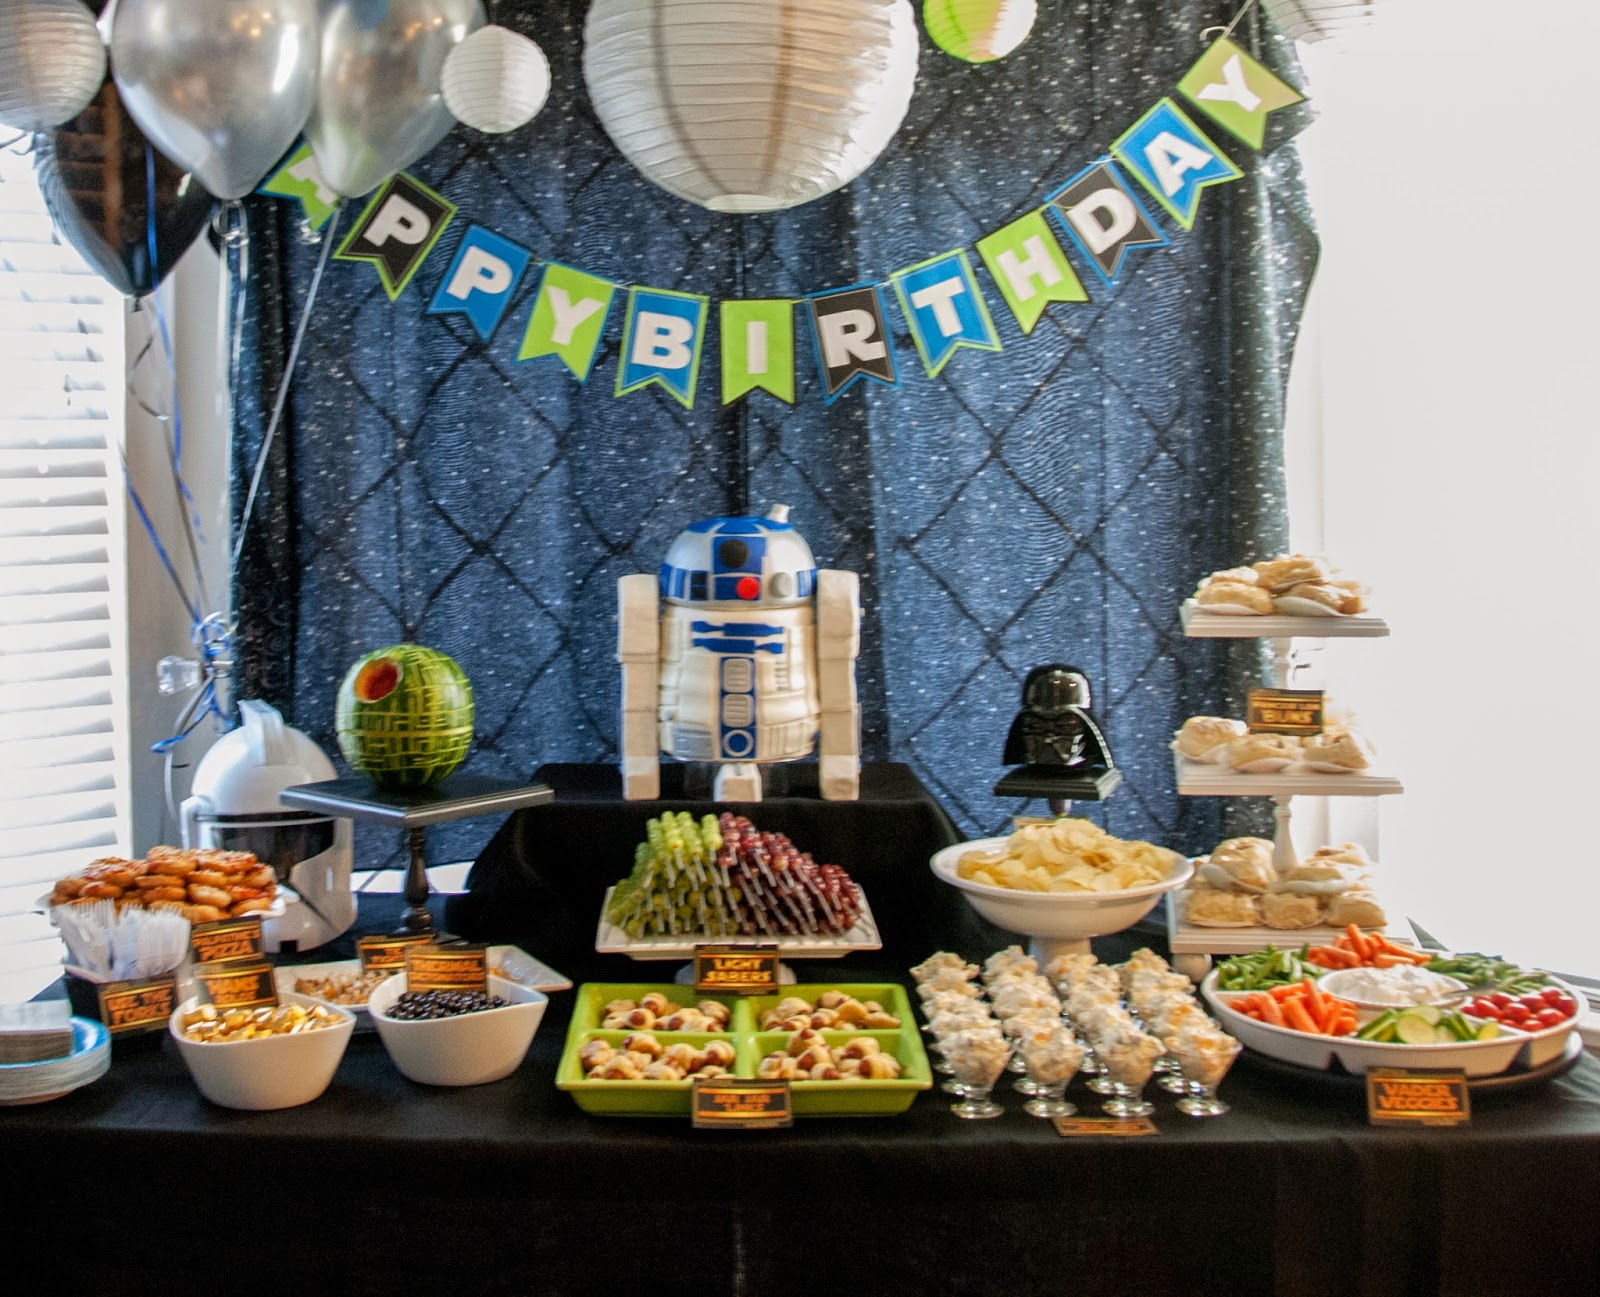 Author robin king blog star wars party with r2d2 cake for Adult birthday decoration